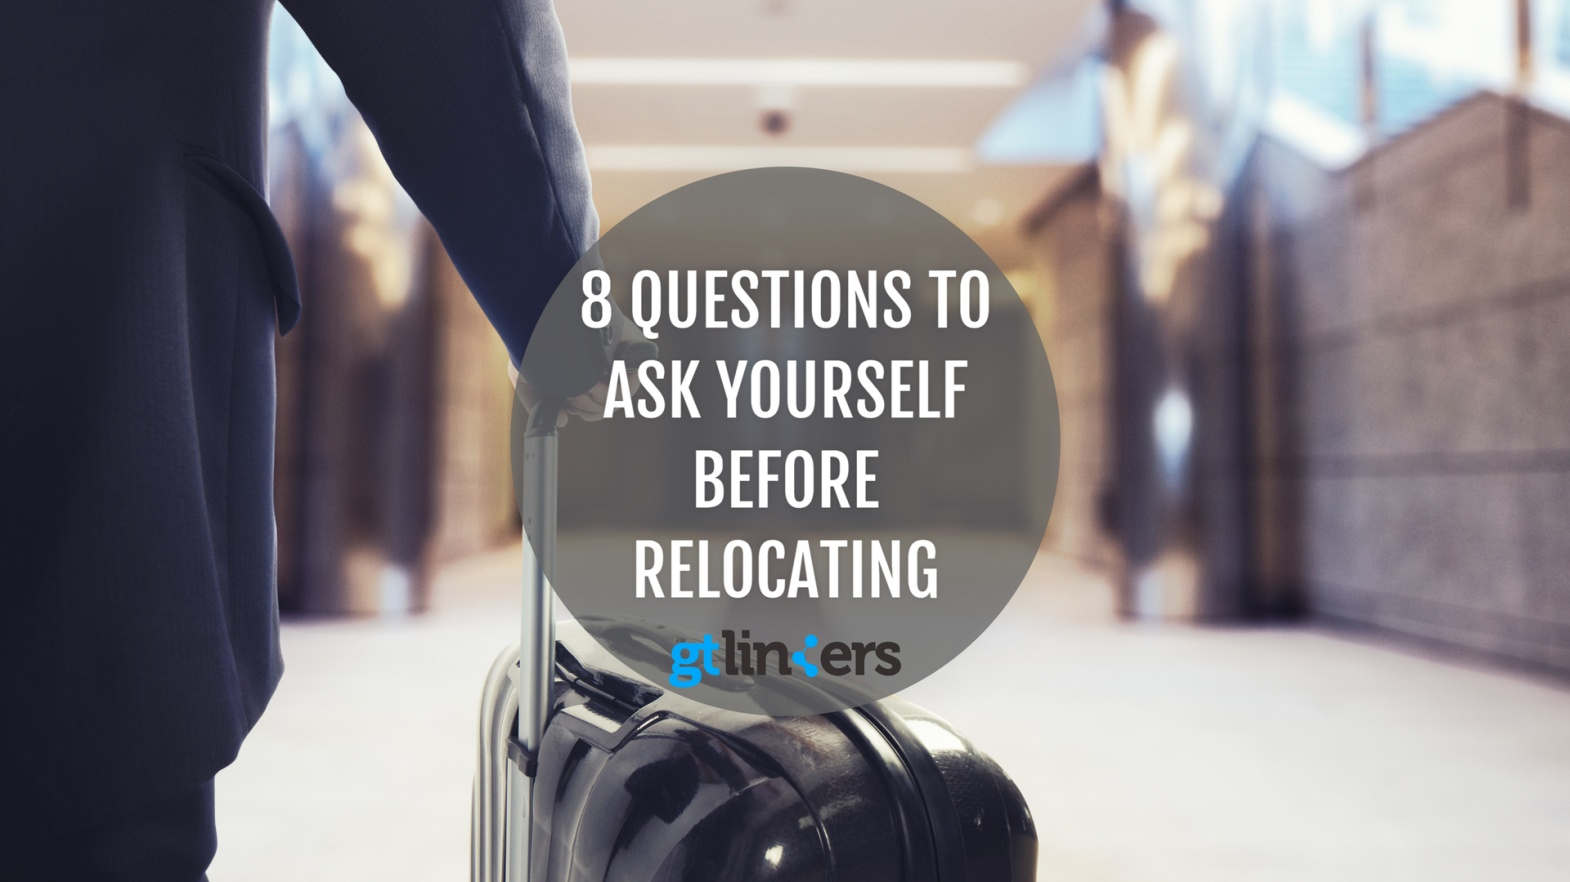 8 questions to ask yourself before relocating for a job